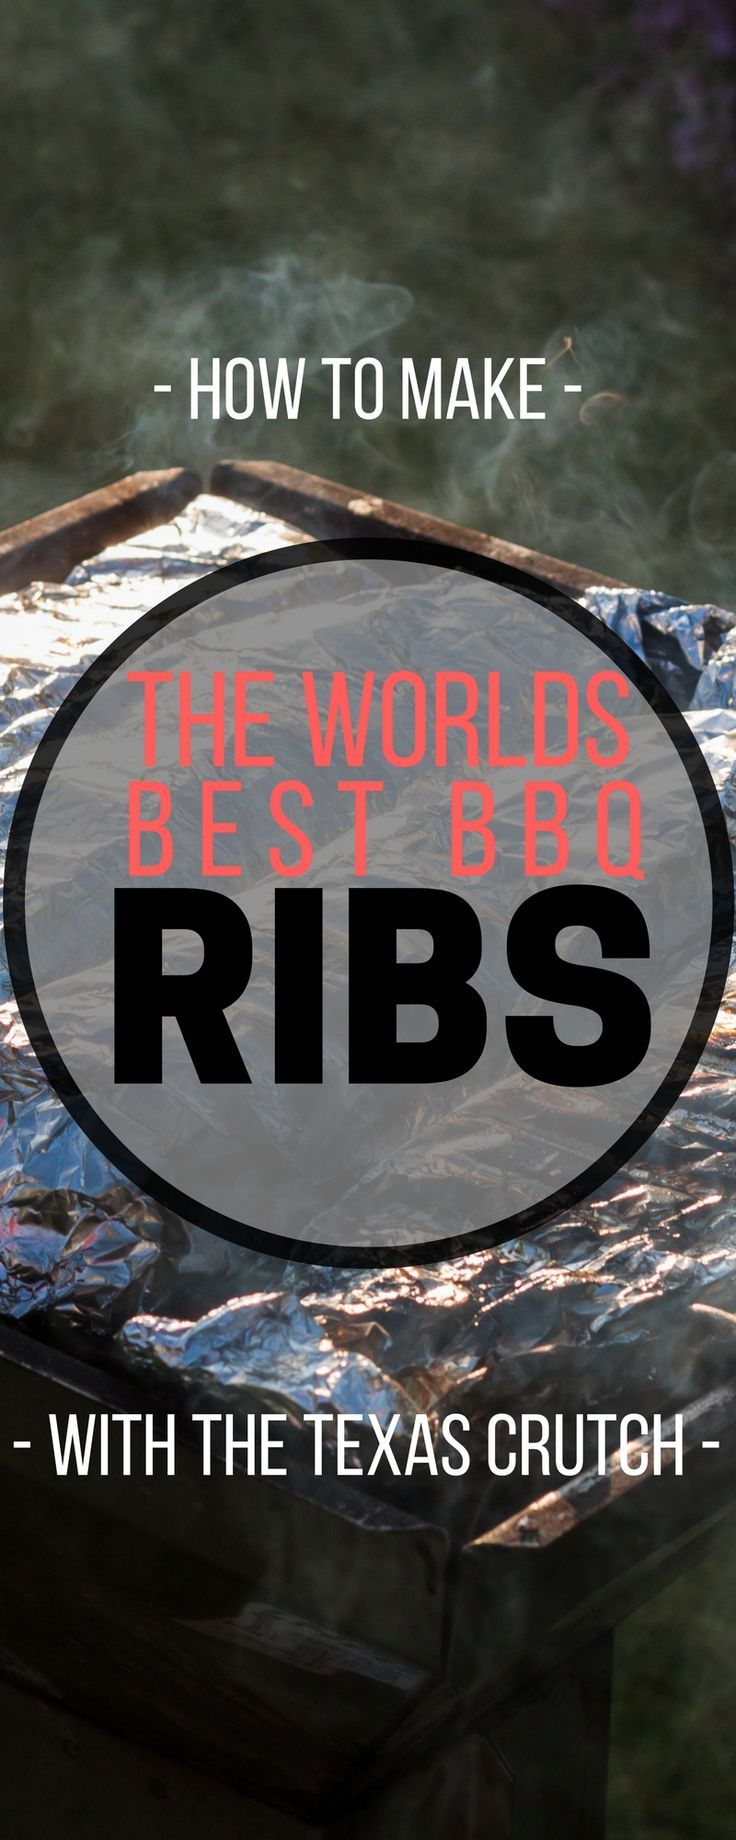 The best ribs recipe out there! The Texas Crutch method is a must! Gas BBQ Recipes | BBQ Ribs | Gas Barbecue Recipes | Gas Smoker Recipes | Gas Grill Recipes | Best Gas Grill Recipes | Best Gas Smoker Recipes | Best Gas BBQ Recipes | Pit Master |  Best Gas Barbecue Recipes | Best BBQ Food | BBQ Inspiration | Barbecue Inspiration | Grilling Inspiration | How To | Ribs | #bbq #barbecue #pitmaster #grilling #grill #ribs  #bbqribs #bbqlife